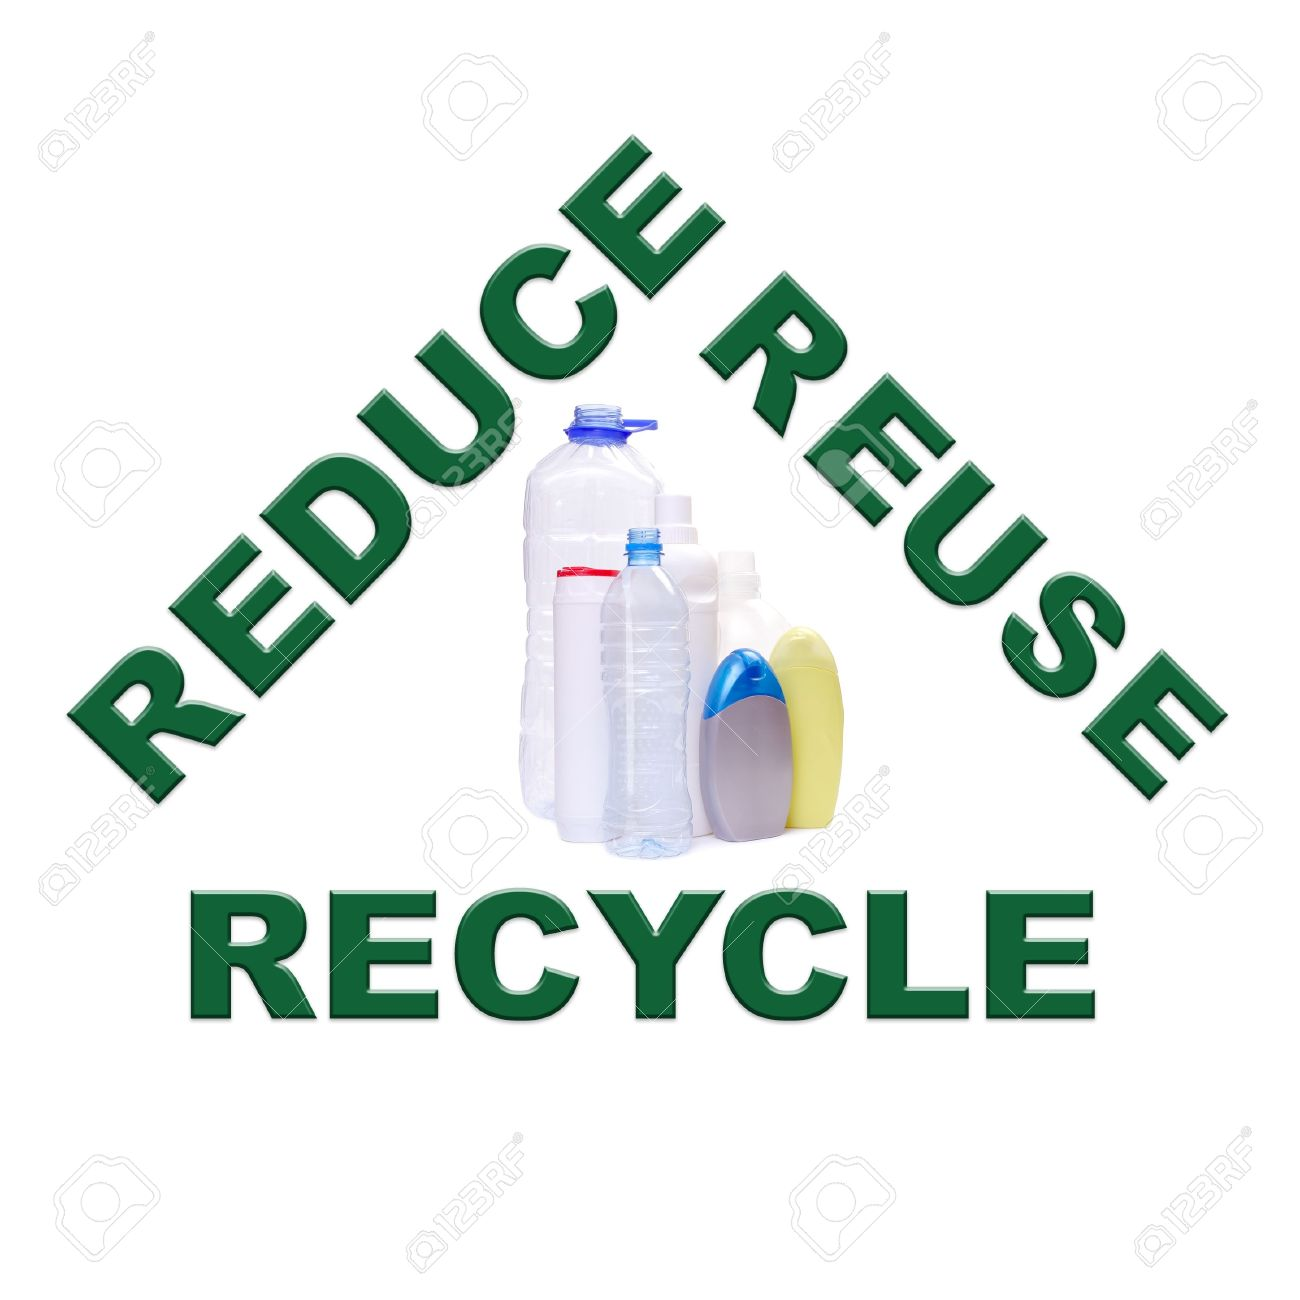 Reduce Reuse Recycle Concept Series